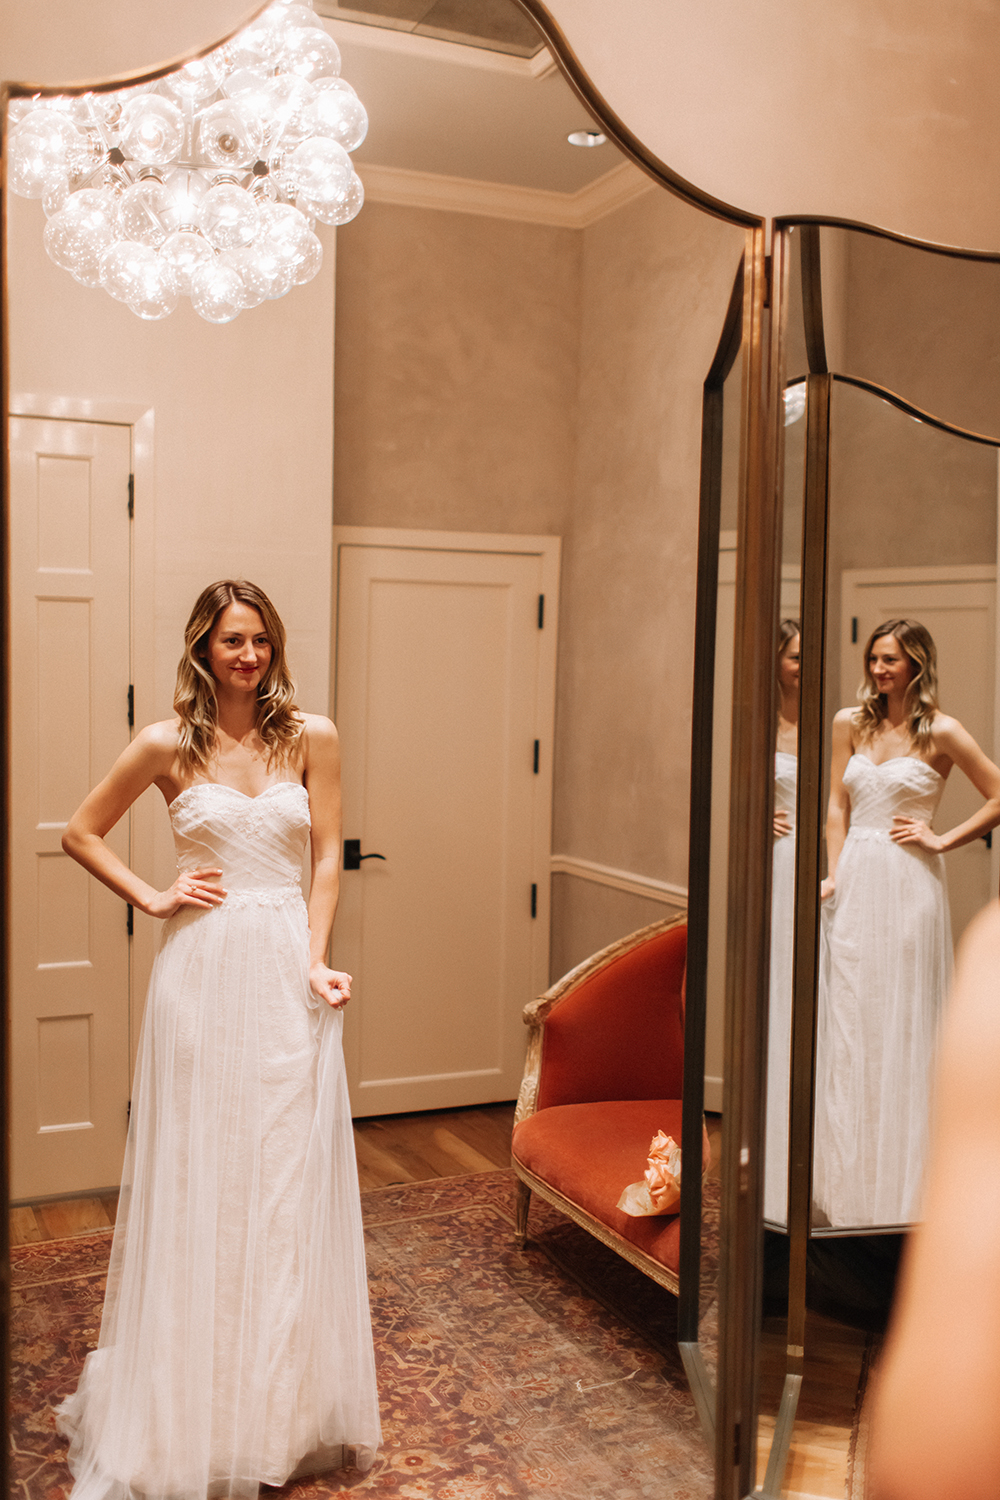 livvyland-blog-bhldn-store-front-houston-texas-bridal-salon-wedding-dress-shopping-austin-texas-fashion-blogger-olivia-watson-kayla-snell-photography-9